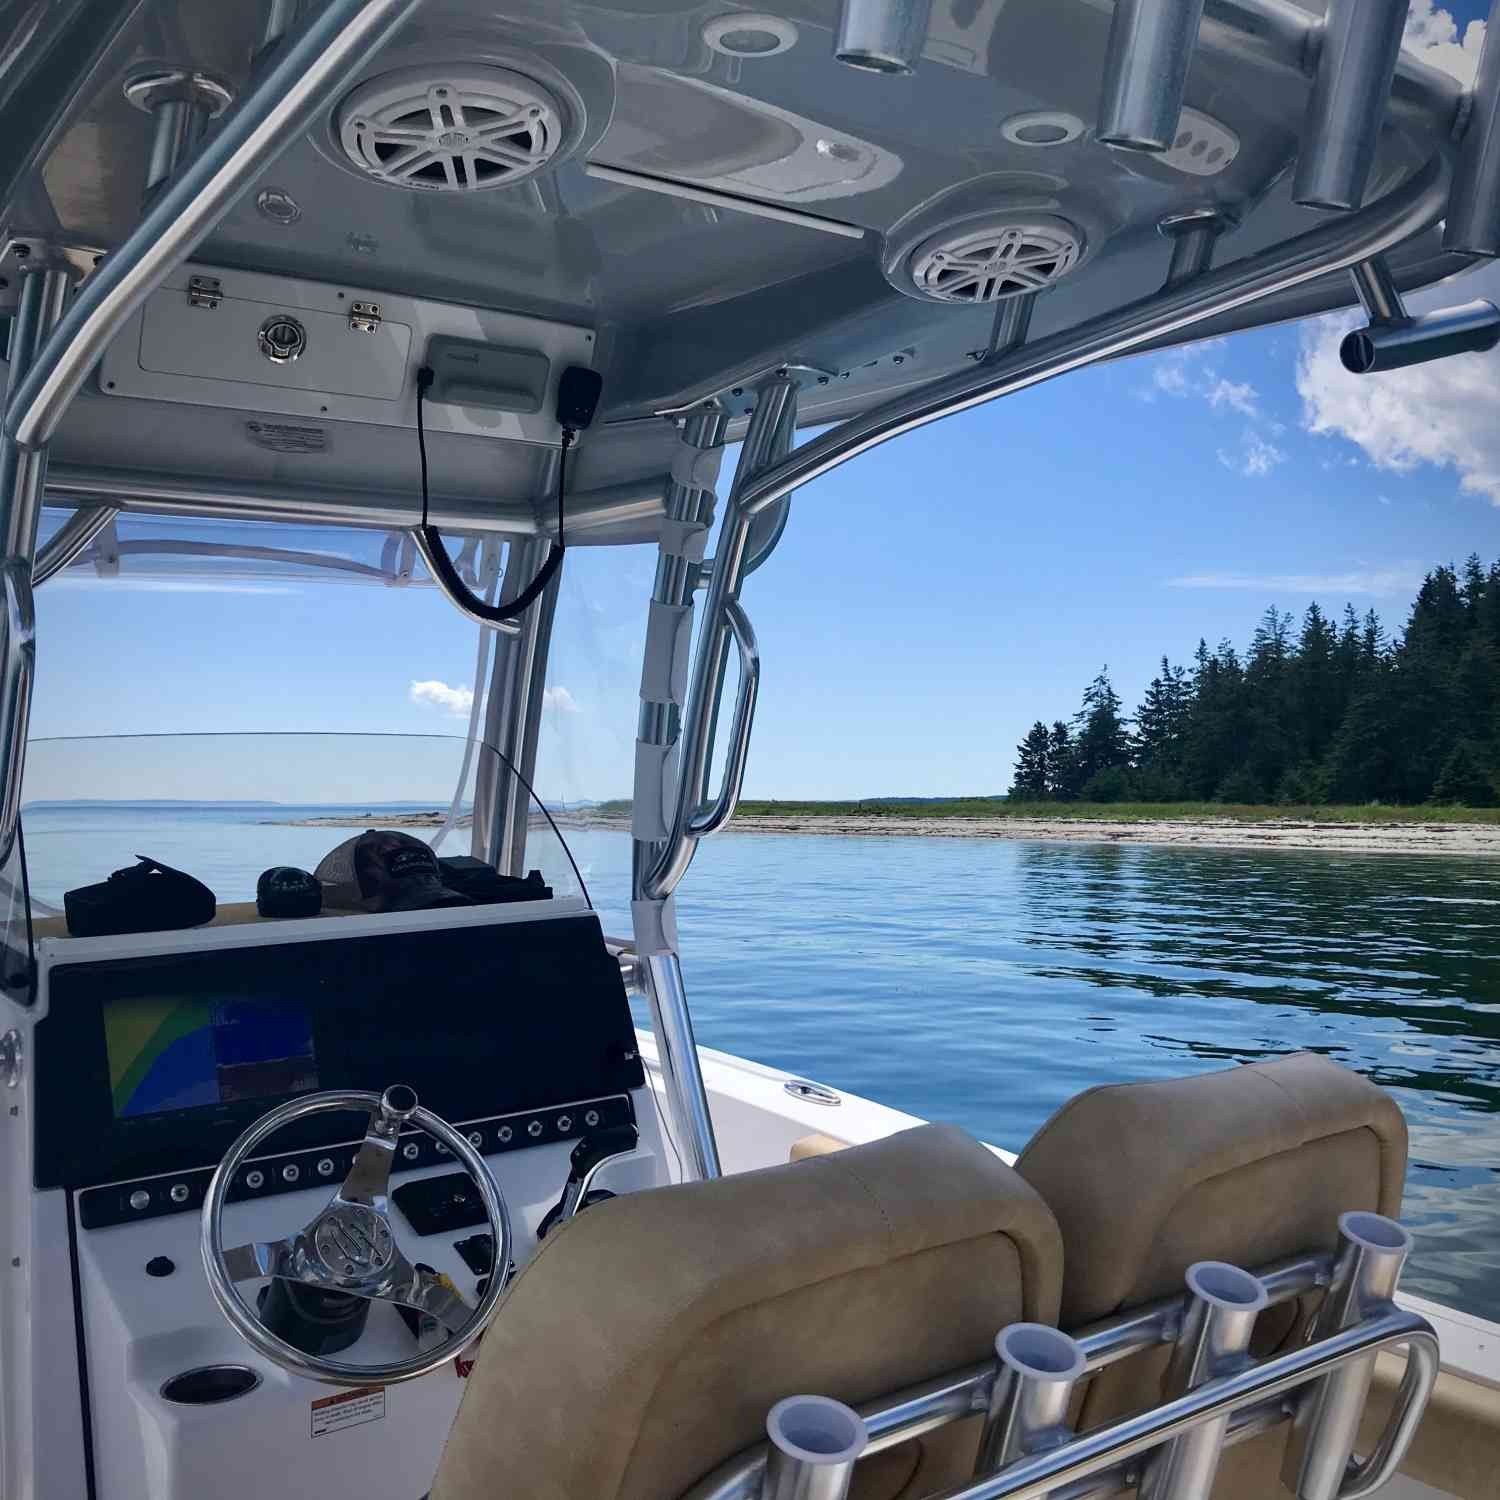 Title: Vitamin D day - On board their Sportsman Heritage 241 Center Console - Location: Long Island (west of Acadia National Park), Maine. Participating in the Photo Contest #SportsmanAugust2020